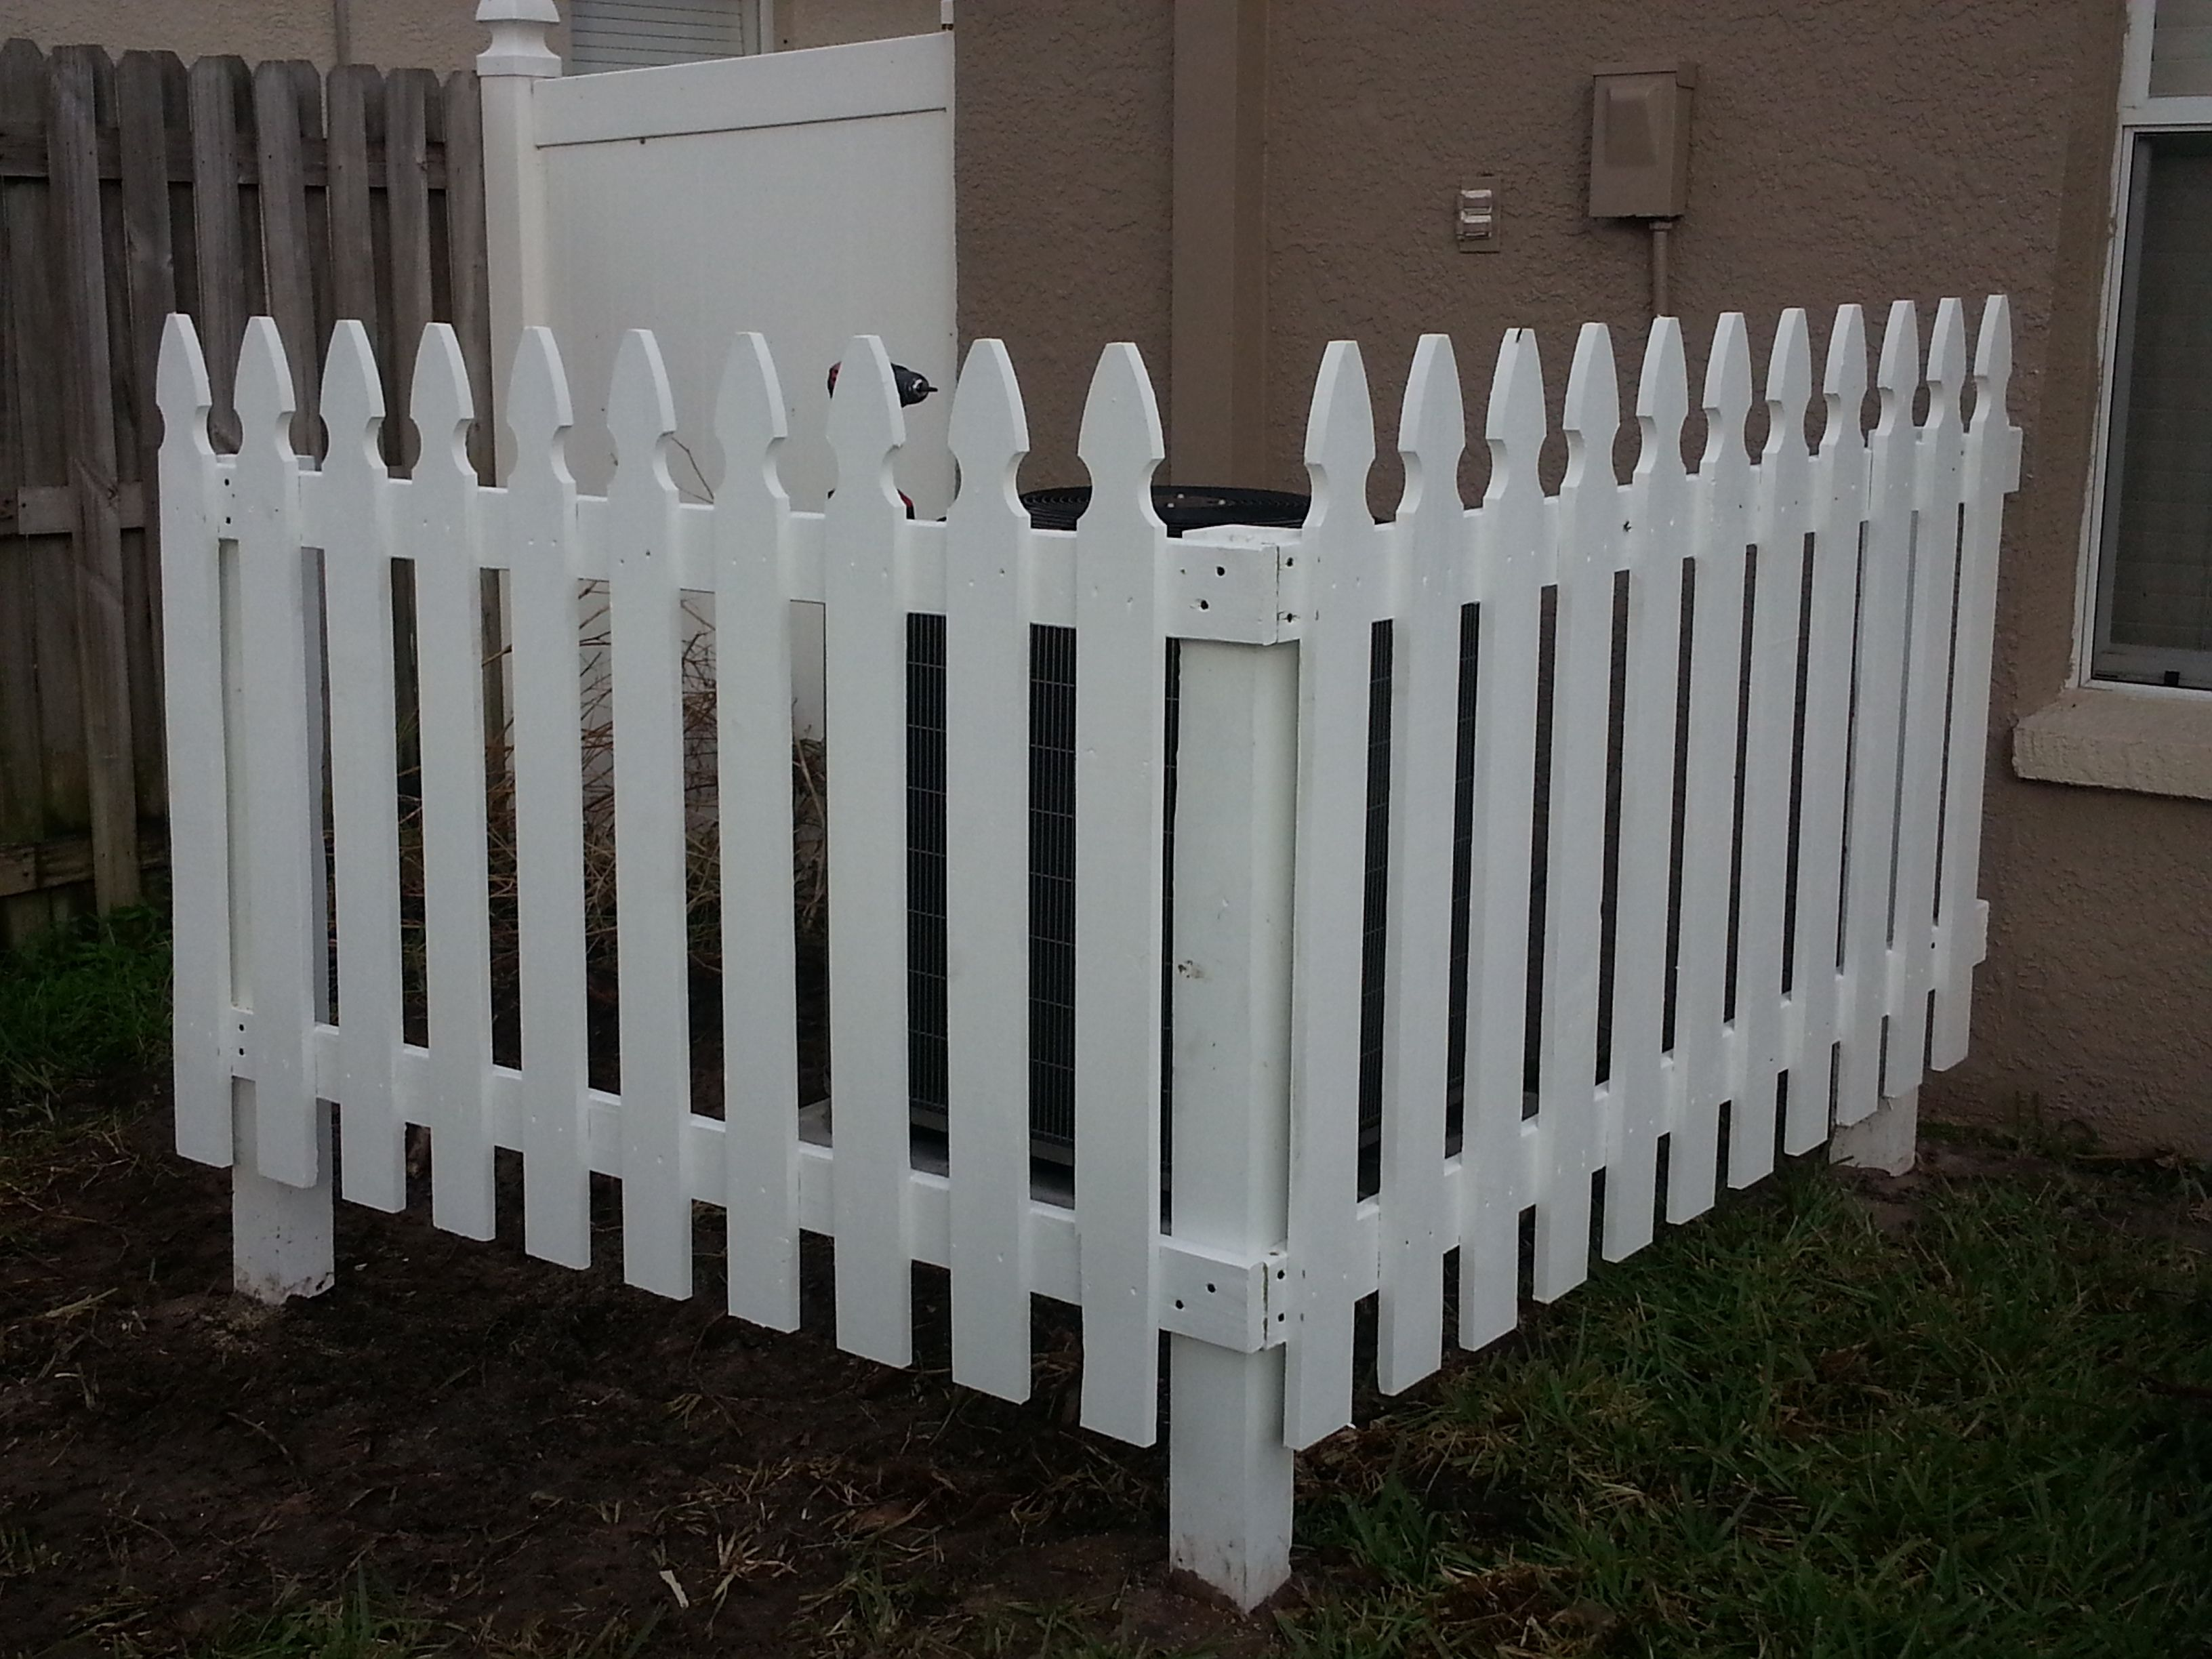 White Picket Fence To Cover Up A C Unit In Backyard Backyard Patio Backyard Yard Design